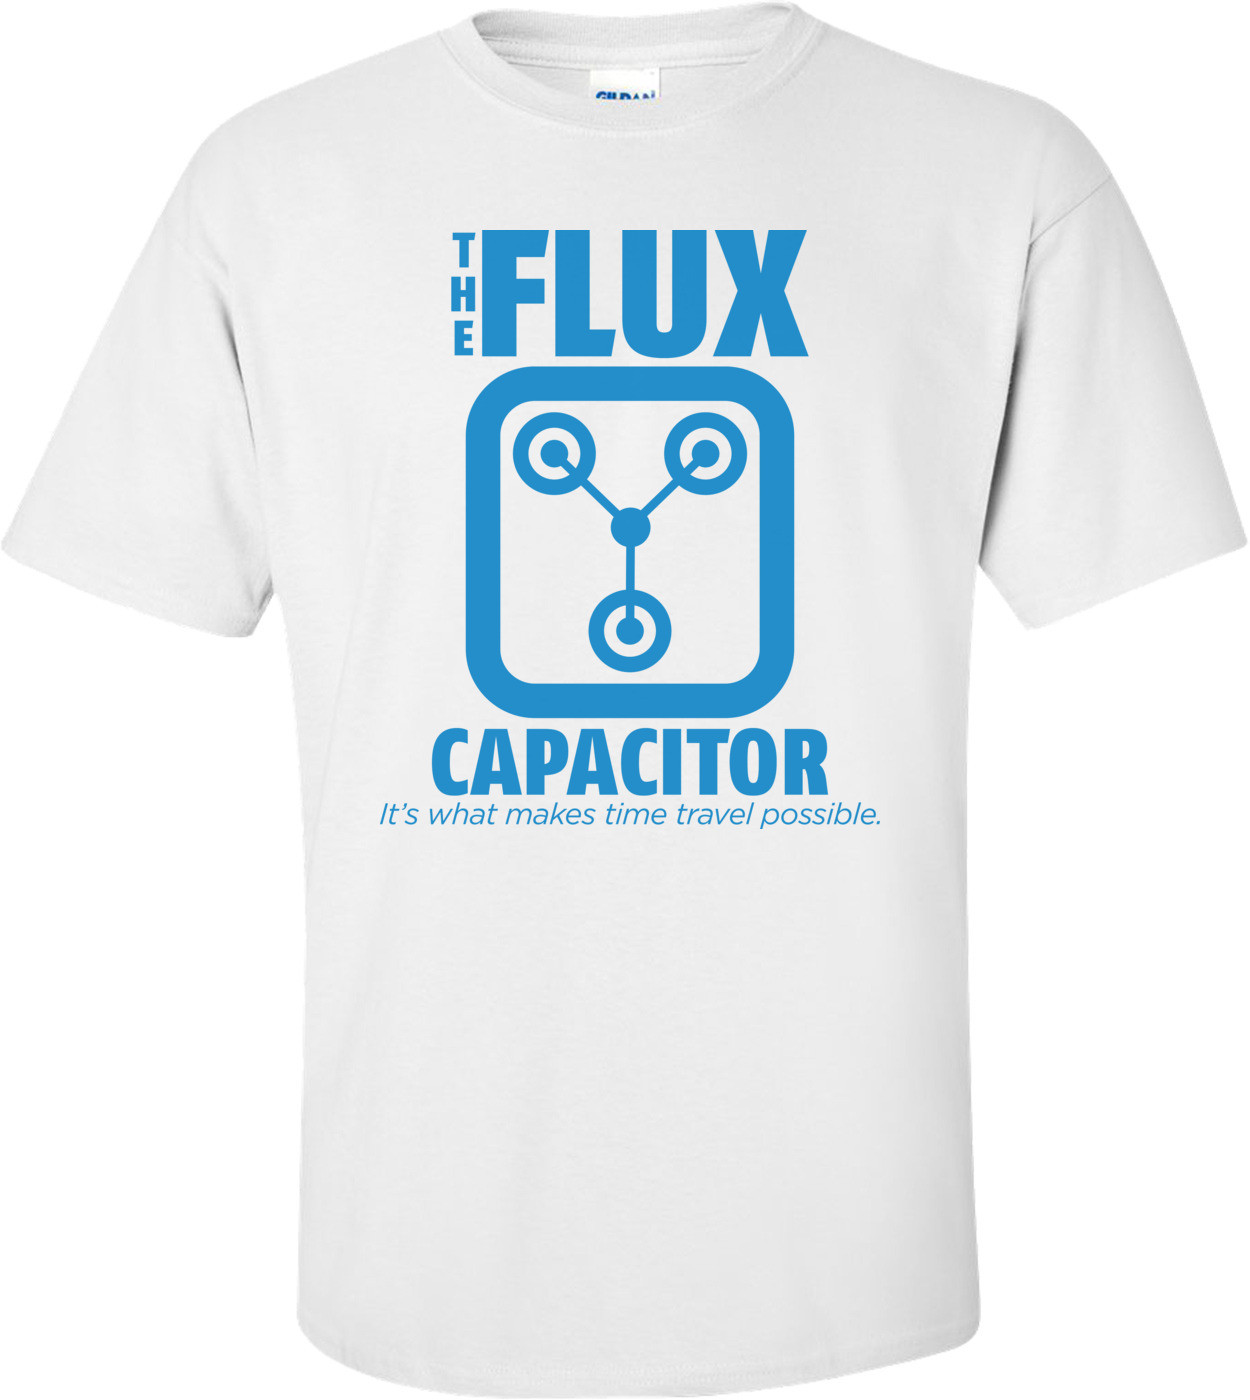 The Flux Capacitor Back To The Future